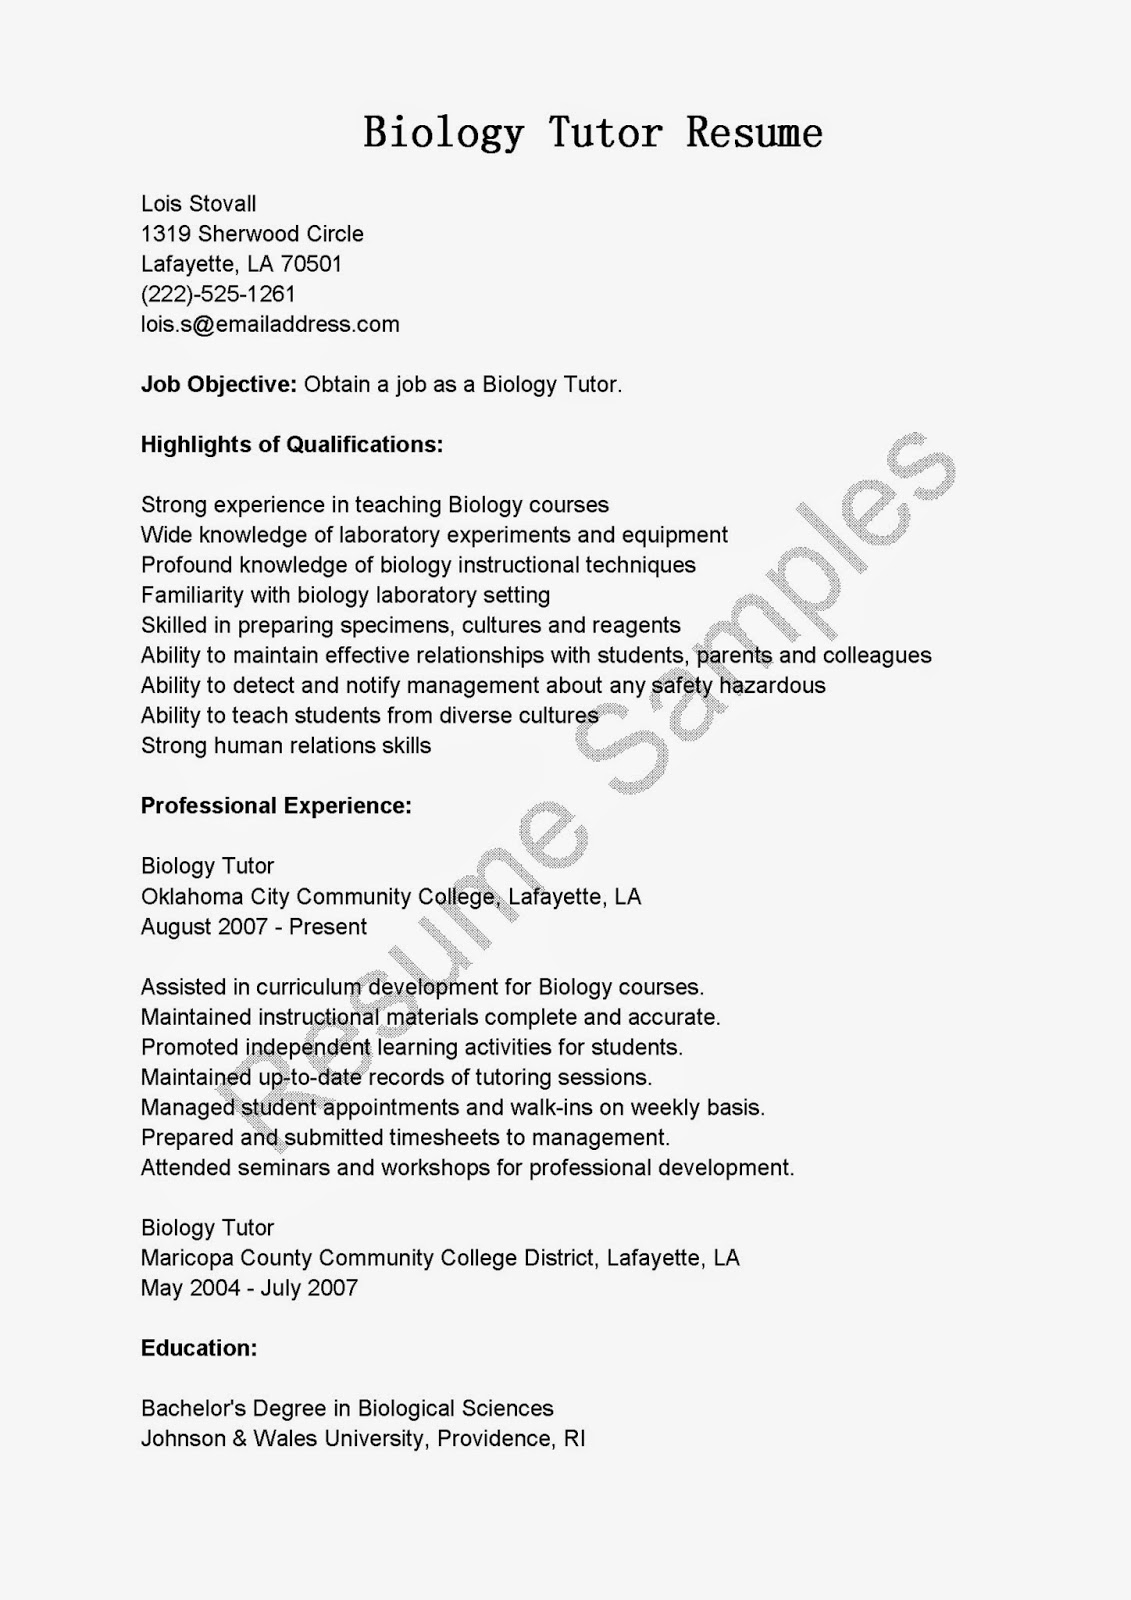 Biology Student Resume Examples Best Resume Examples